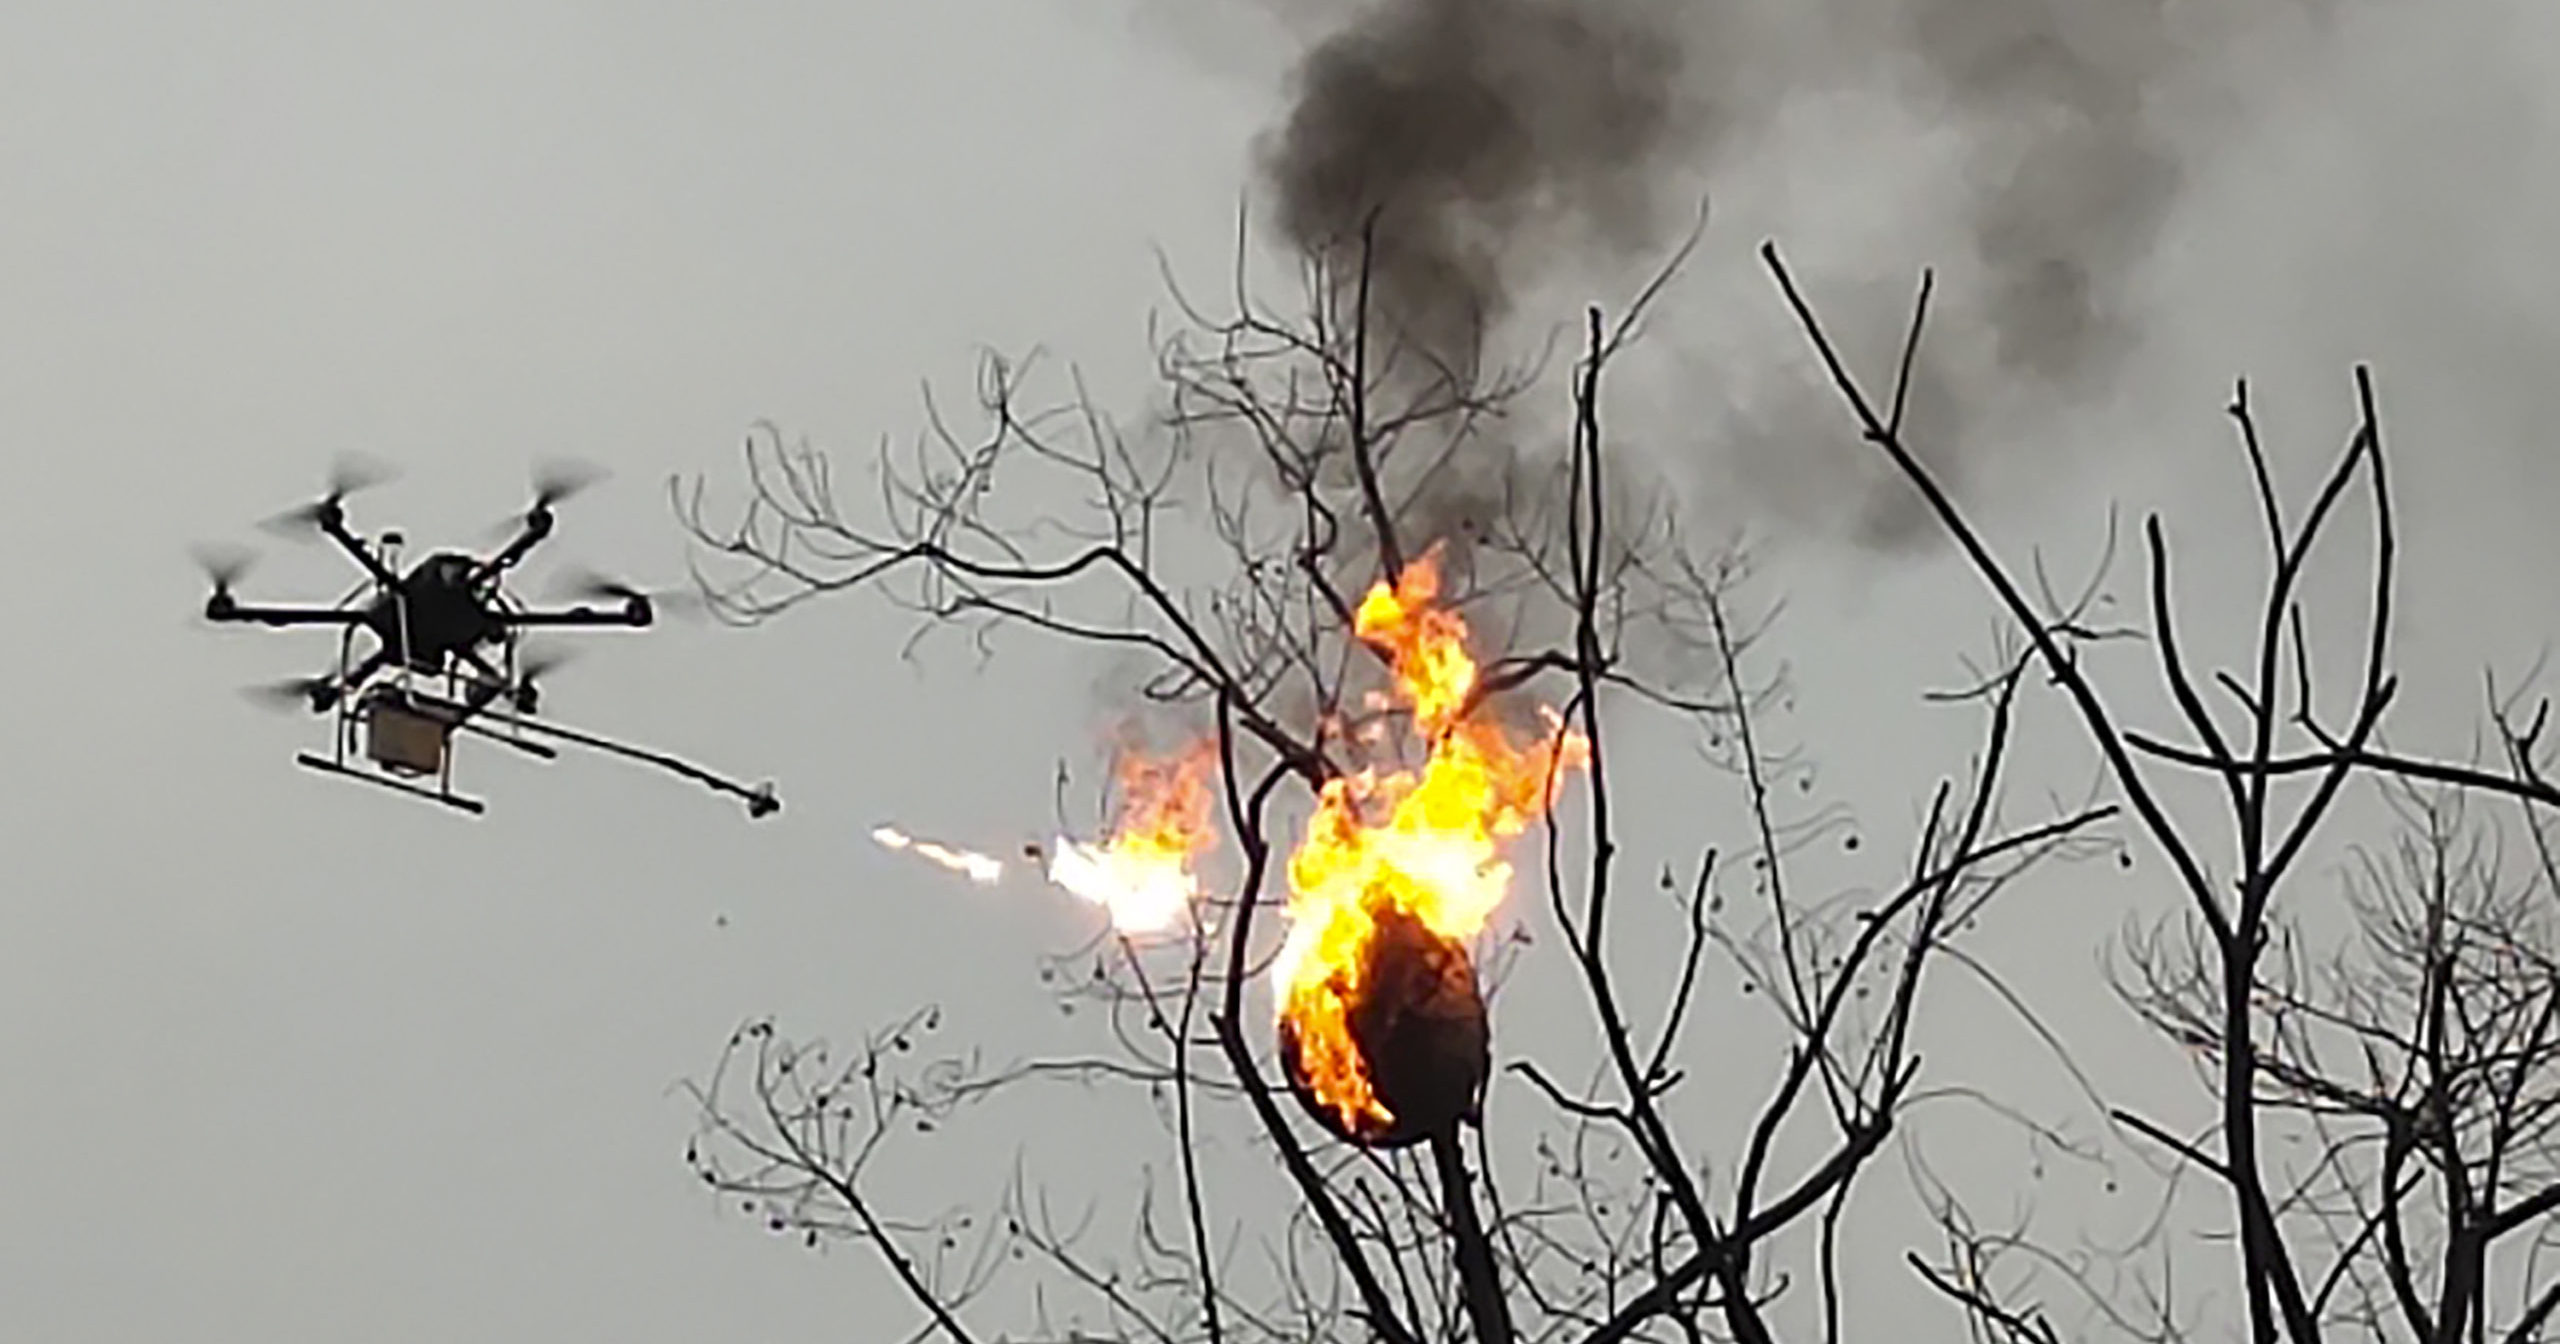 In this Dec. 10, 2020, photo released by Blue Sky Rescue of Zhong County, a drone equipped with a flamethrower burns a wasp nest at a village in Zhong county near Chongqing municipality in southwestern China.